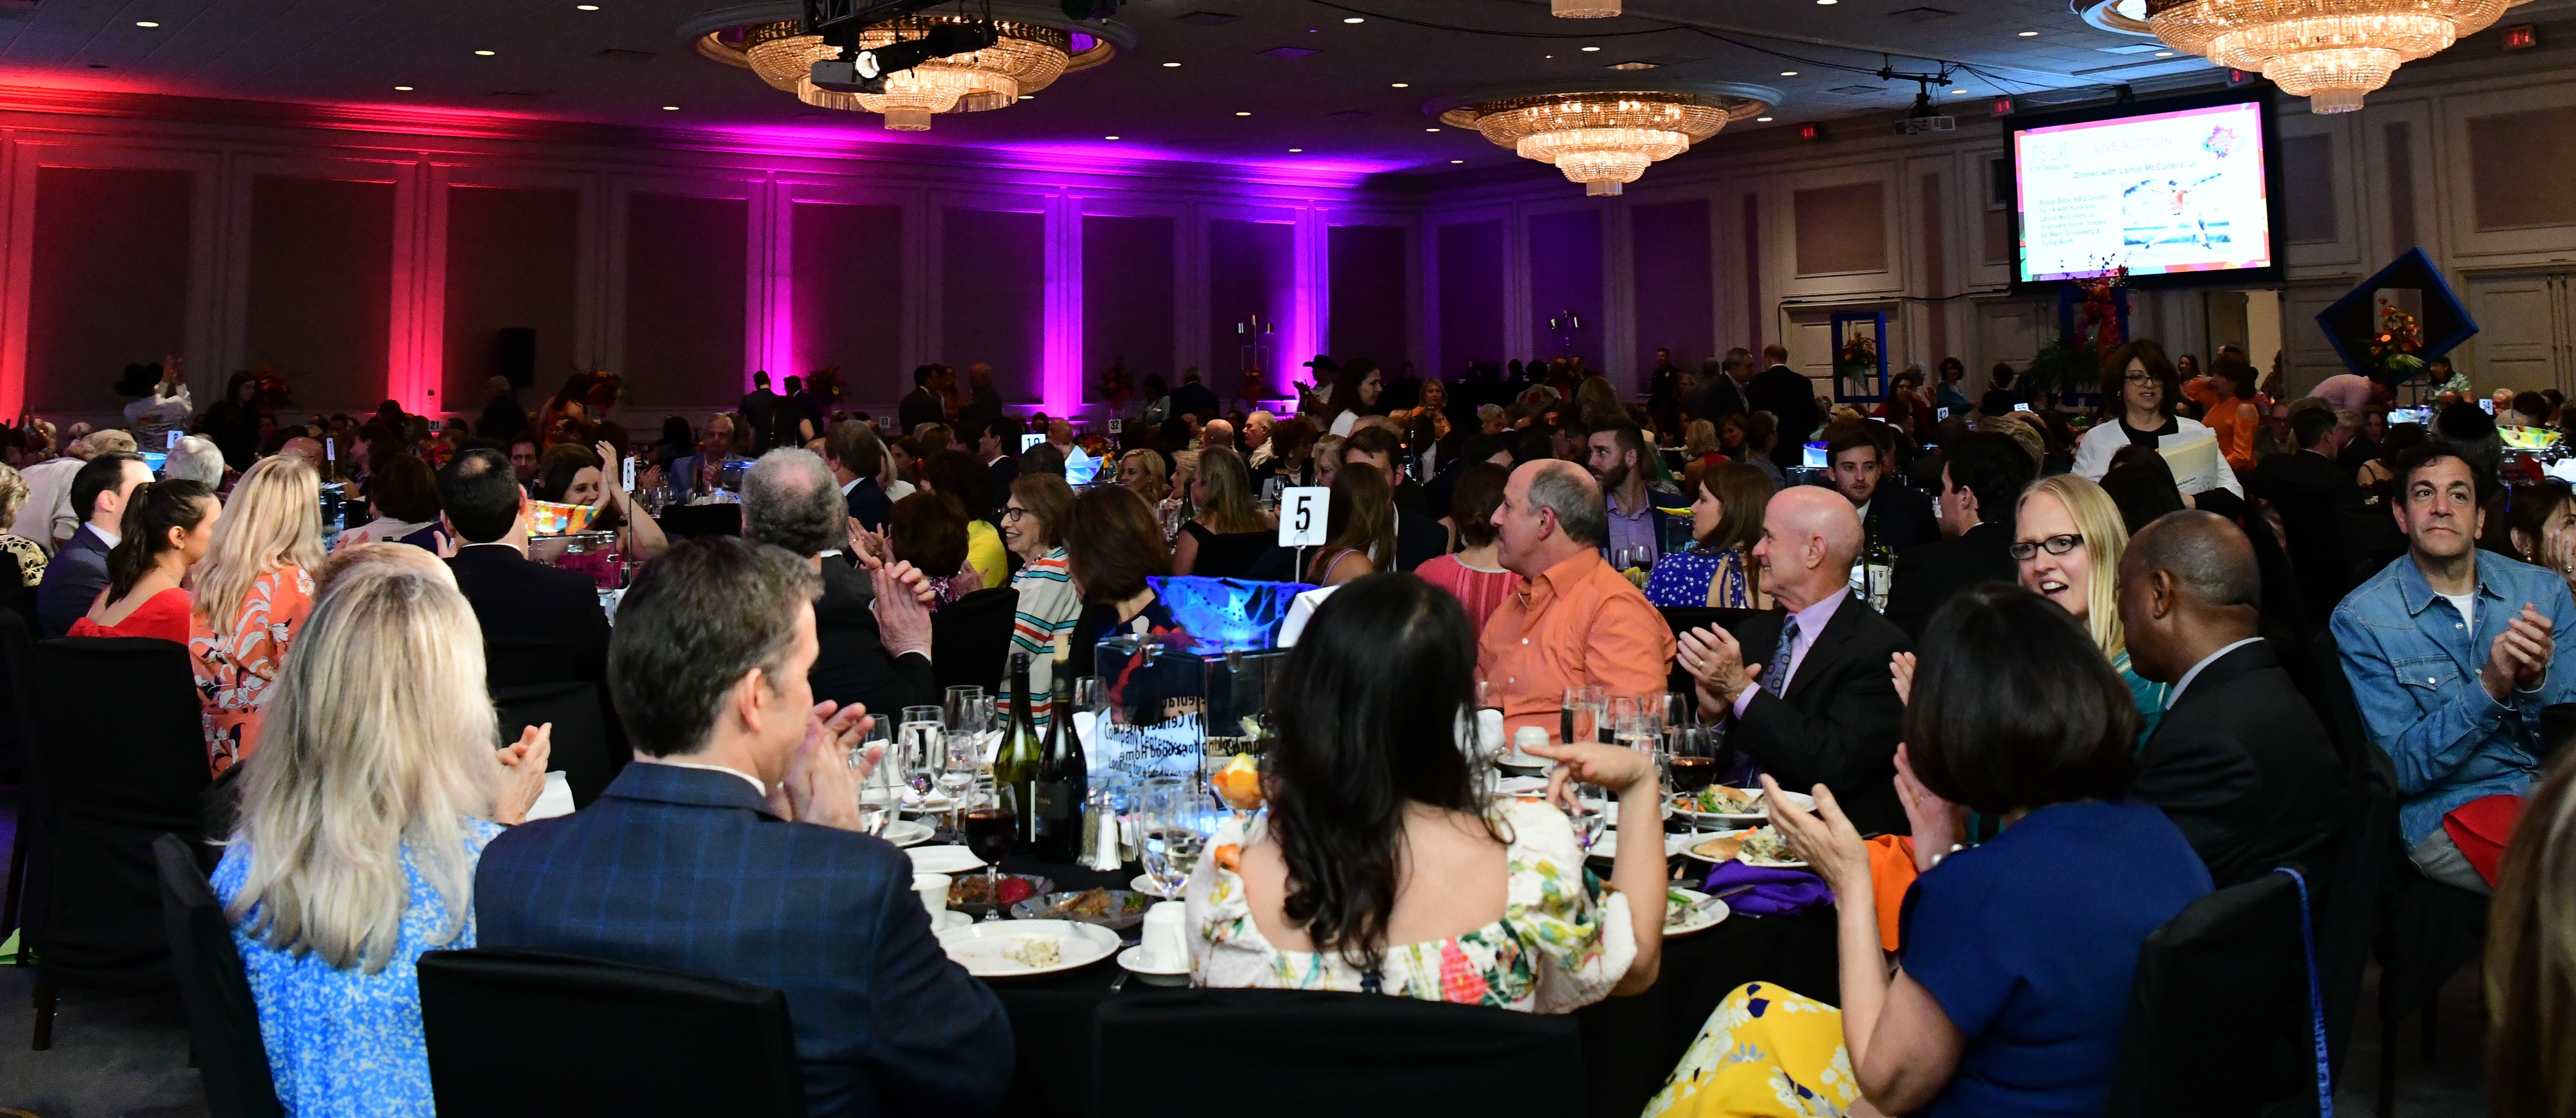 Image of a large room filled with donors sitting at tables during the JFS 2019 event